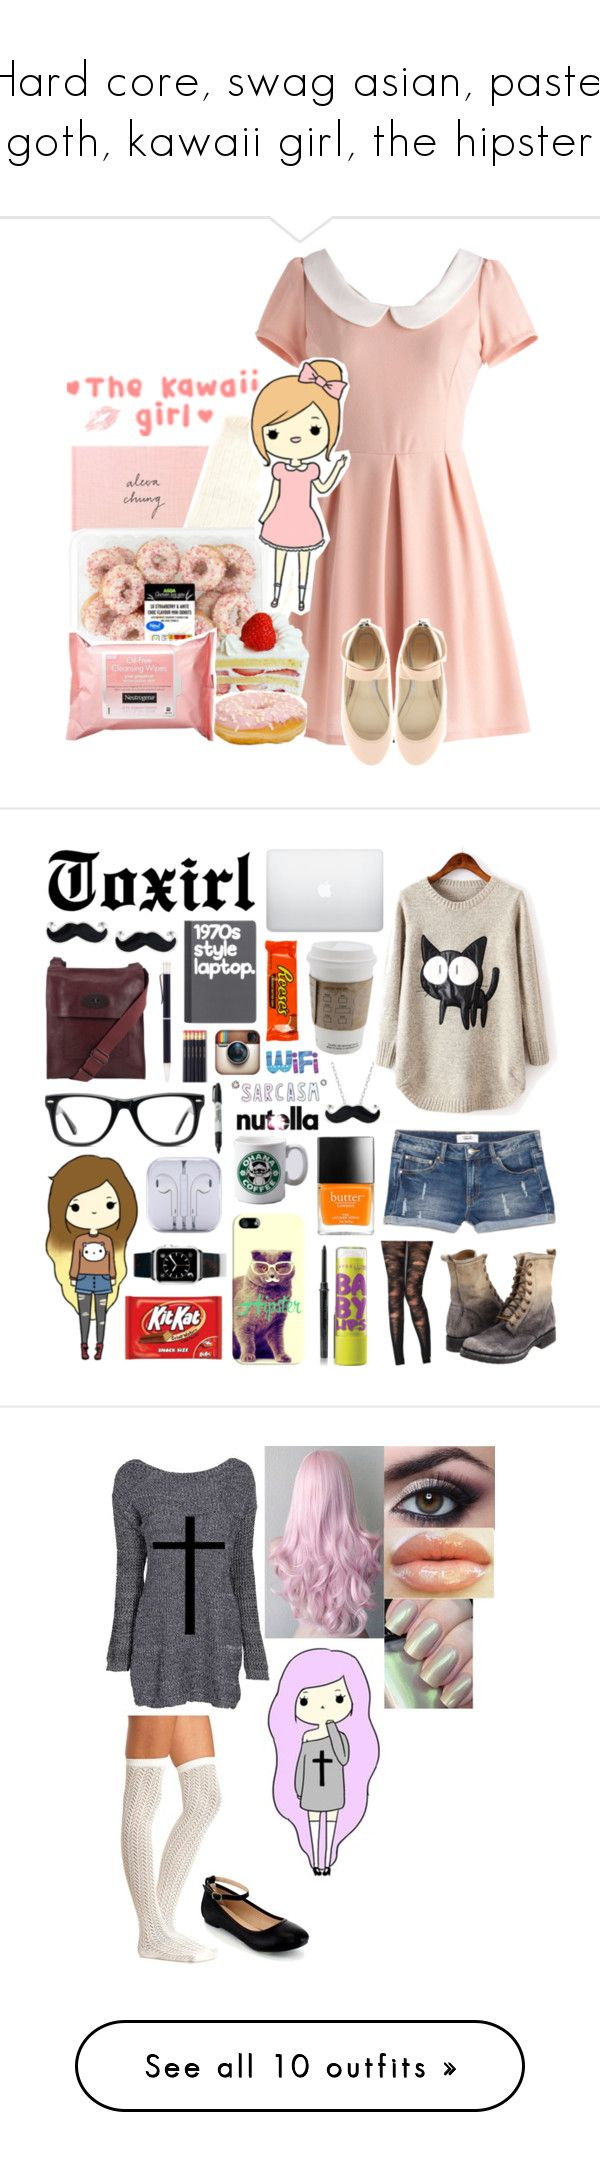 """""""Hard core, swag asian, pastel goth, kawaii girl, the hipster"""" by alyssajspolyvore ❤ liked on Polyvore featuring ASOS, Charlotte Russe, Neutrogena, MANGO, Frye, Jonathan Aston, Muse, Mary Kay, Maybelline and Mulberry"""